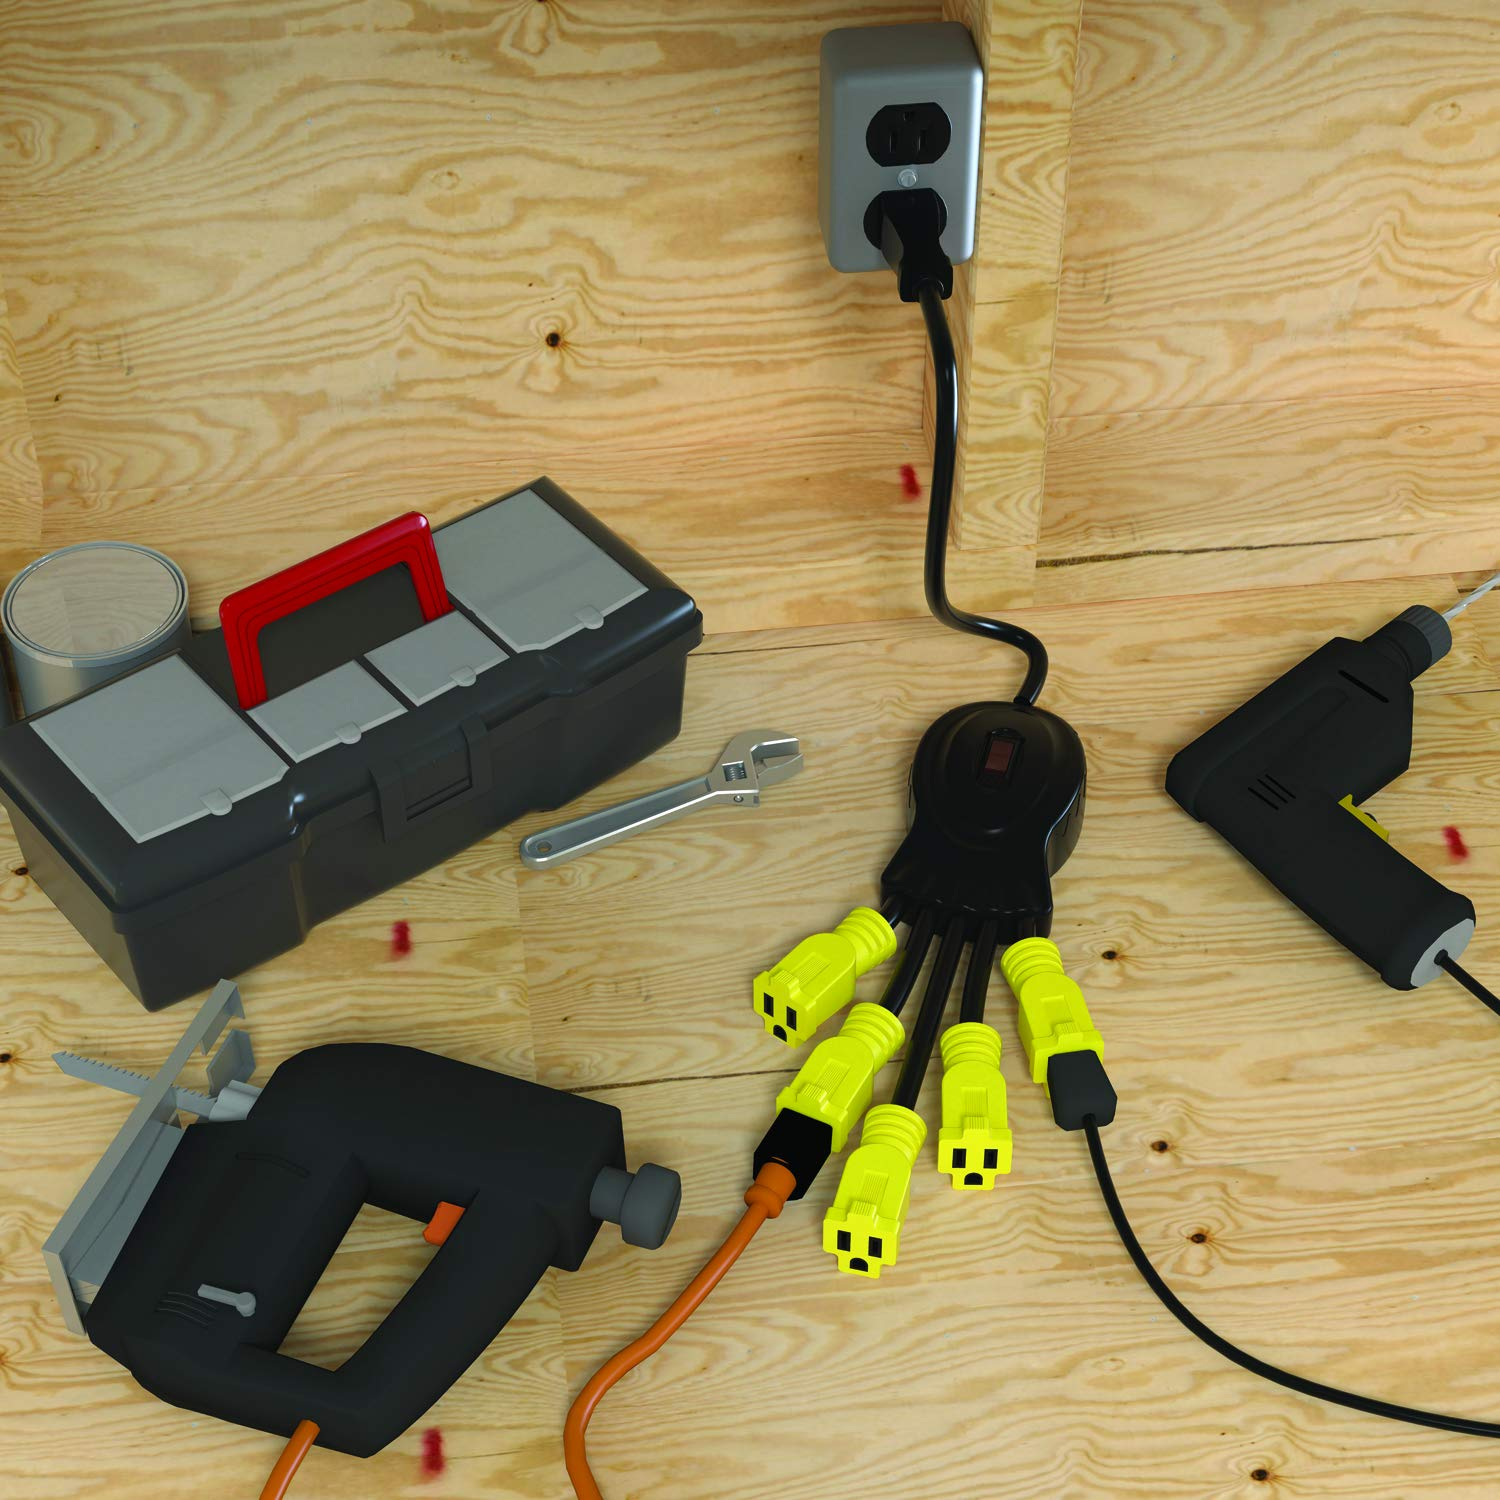 Stanley 31497 Power Squid Mini Multiplier, Black/Yellow, 1-Pack - Power Strips And Multi Outlets - Amazon.com